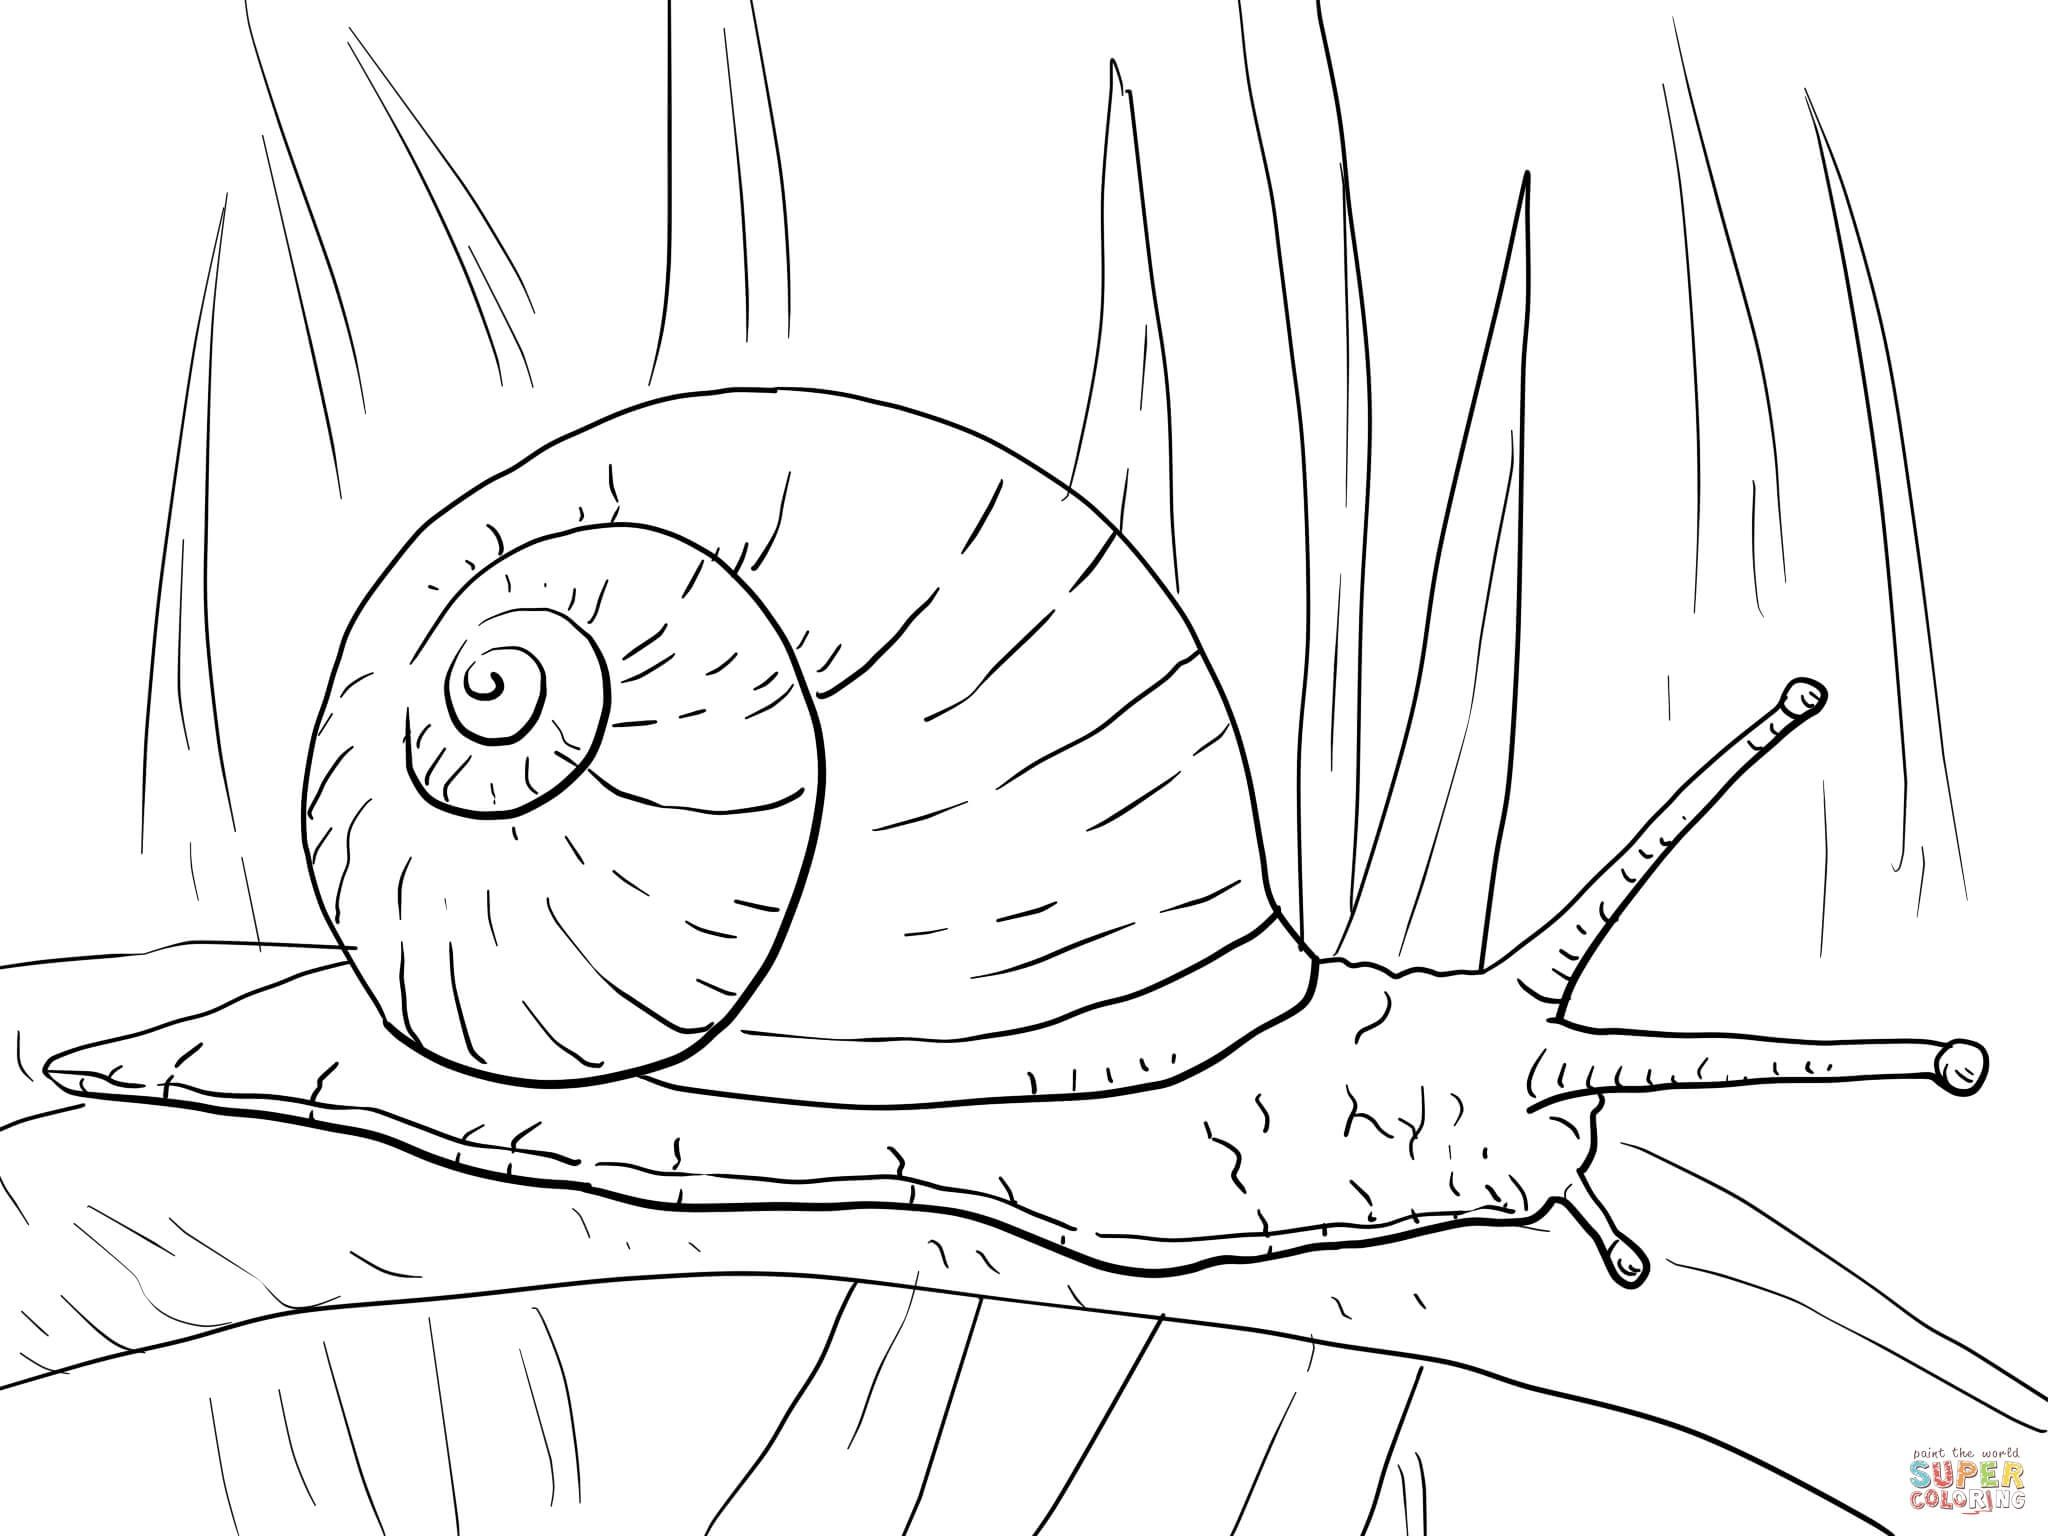 Writing Garden Snail Coloring Page Free Printable Coloring Pages